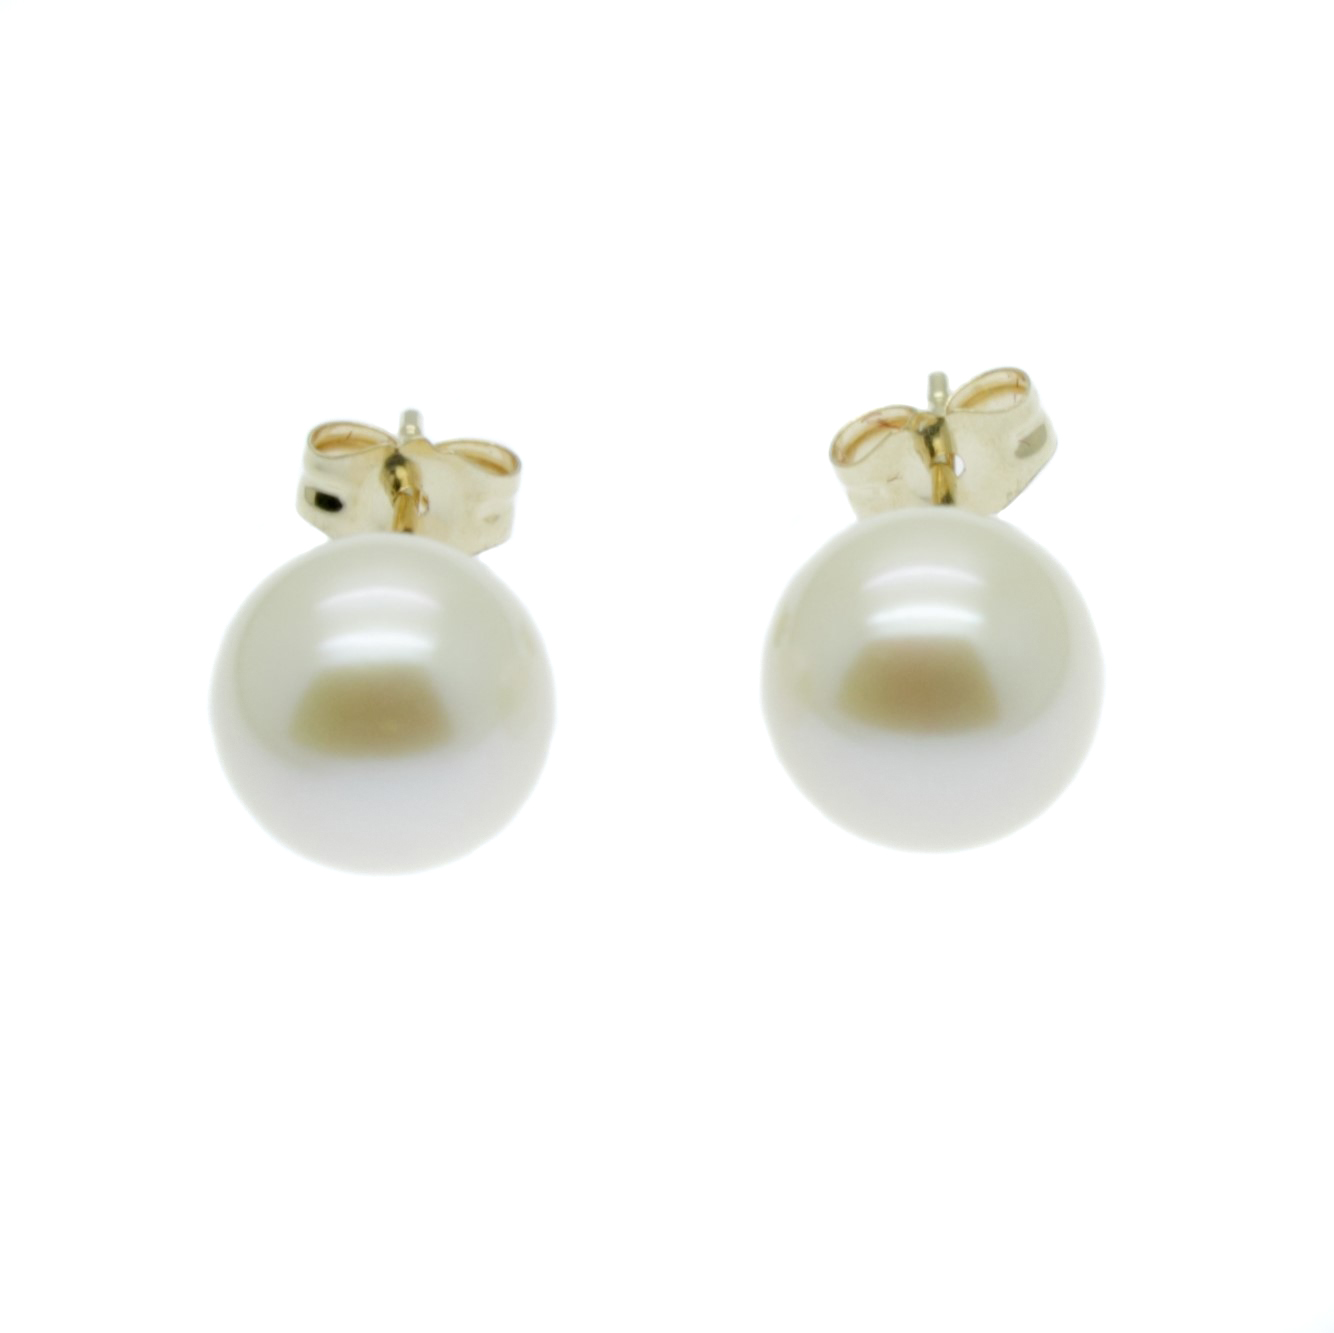 Pearl Earrings Aaa 8mm White Round Cultured Pearls On 9ct Gold Posts